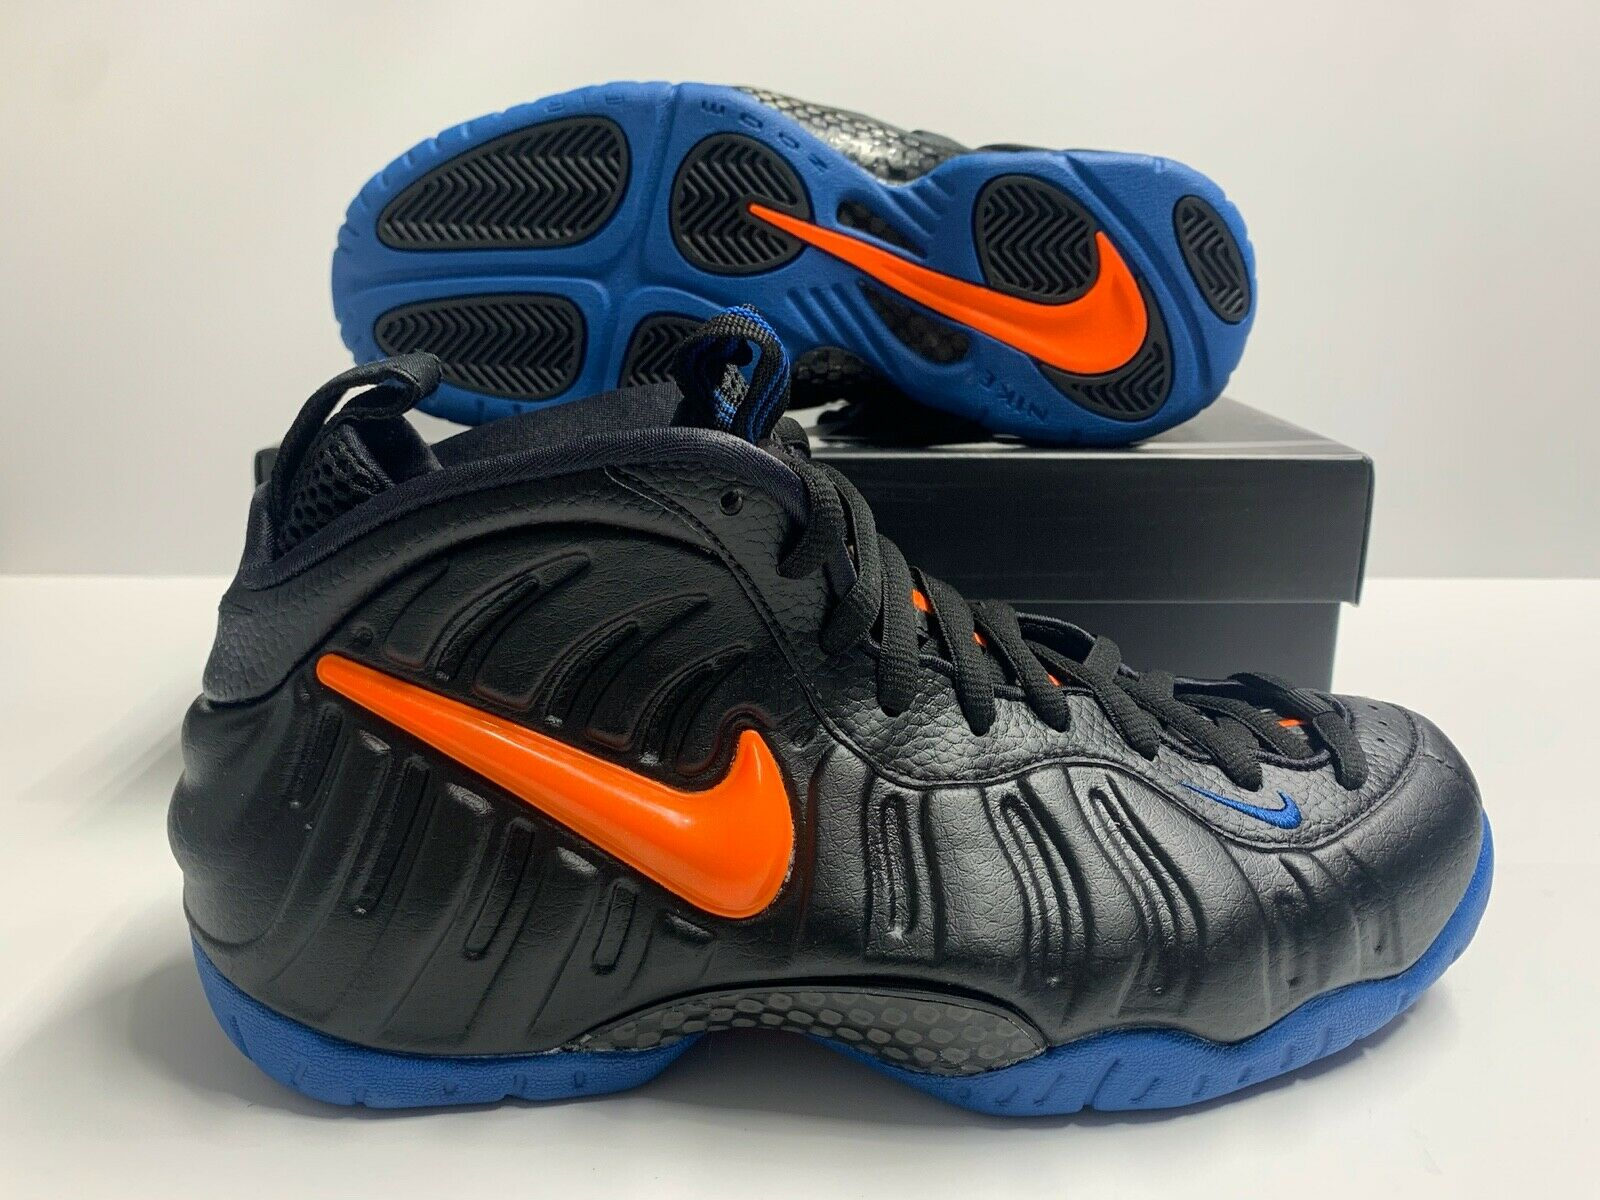 Nike Air Foamposite Pro Knicks